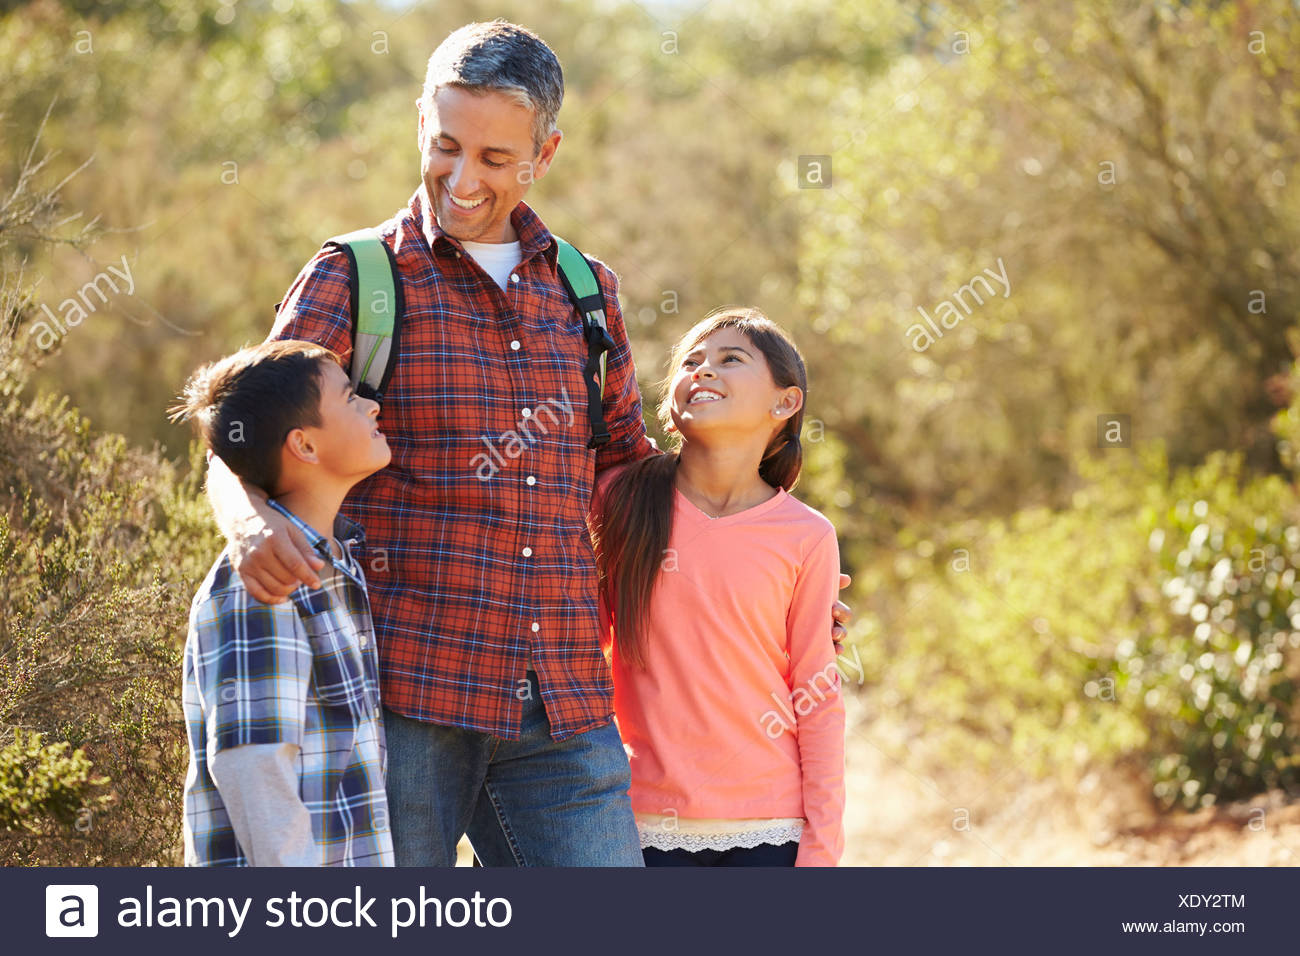 Father And Children Hiking In Countryside Wearing Backpacks - Stock Image